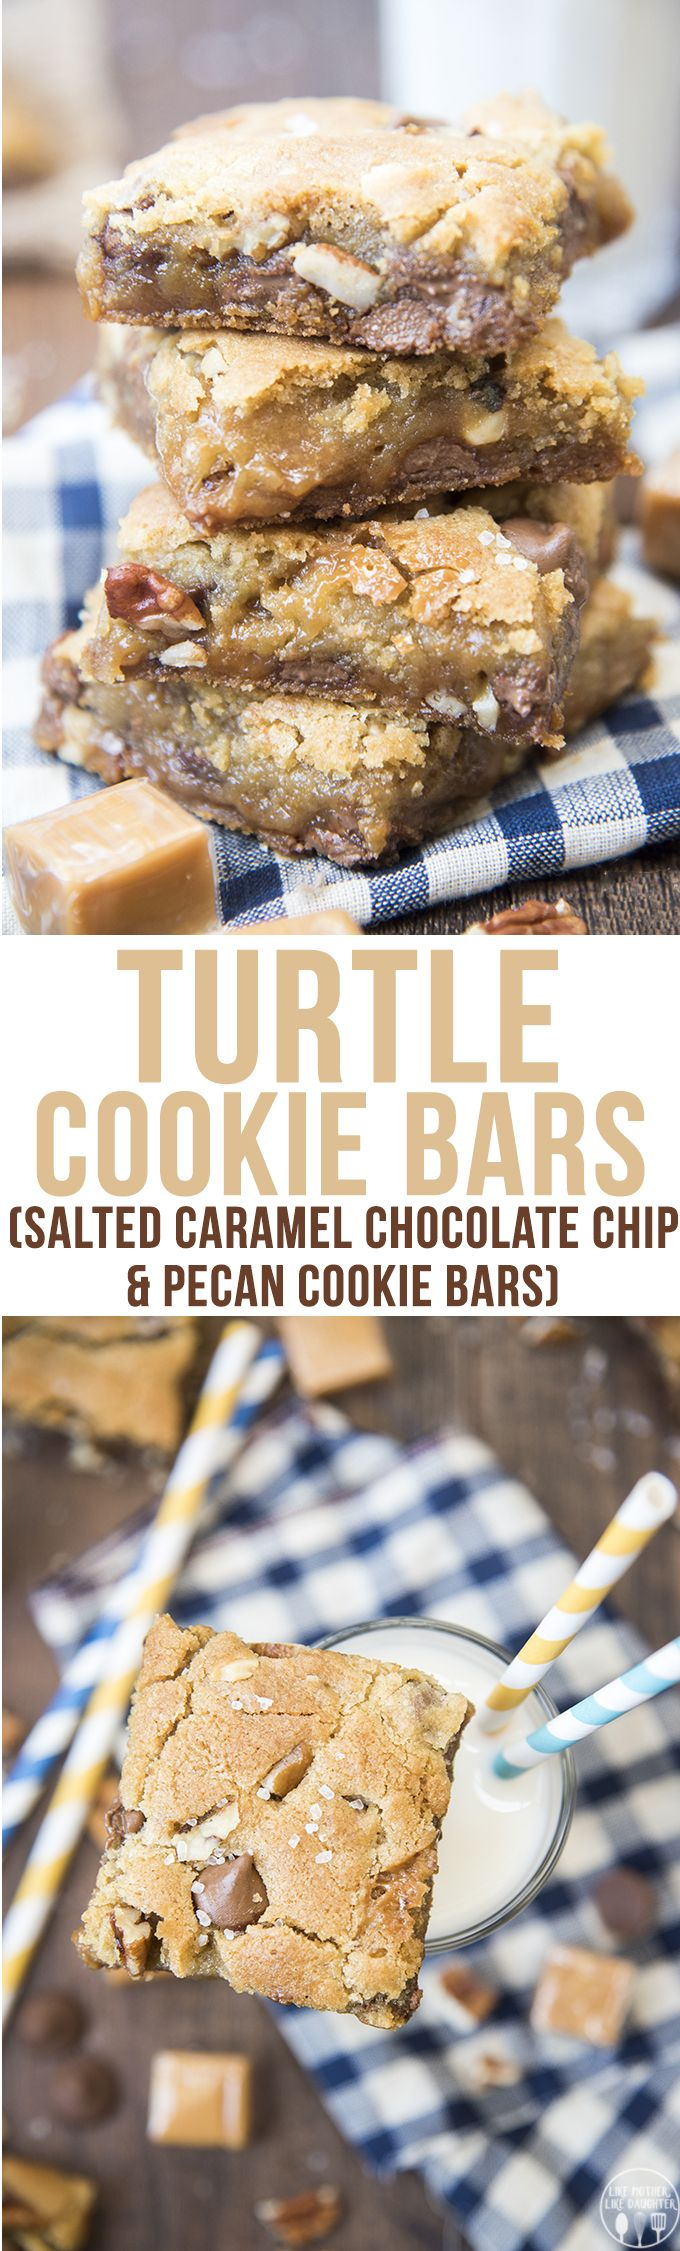 Turtle Cookie Bars - These cookie bars have two layers of chocolate chip pecan filled cookie, full of gooey caramel in the middle. Everyone will love these!